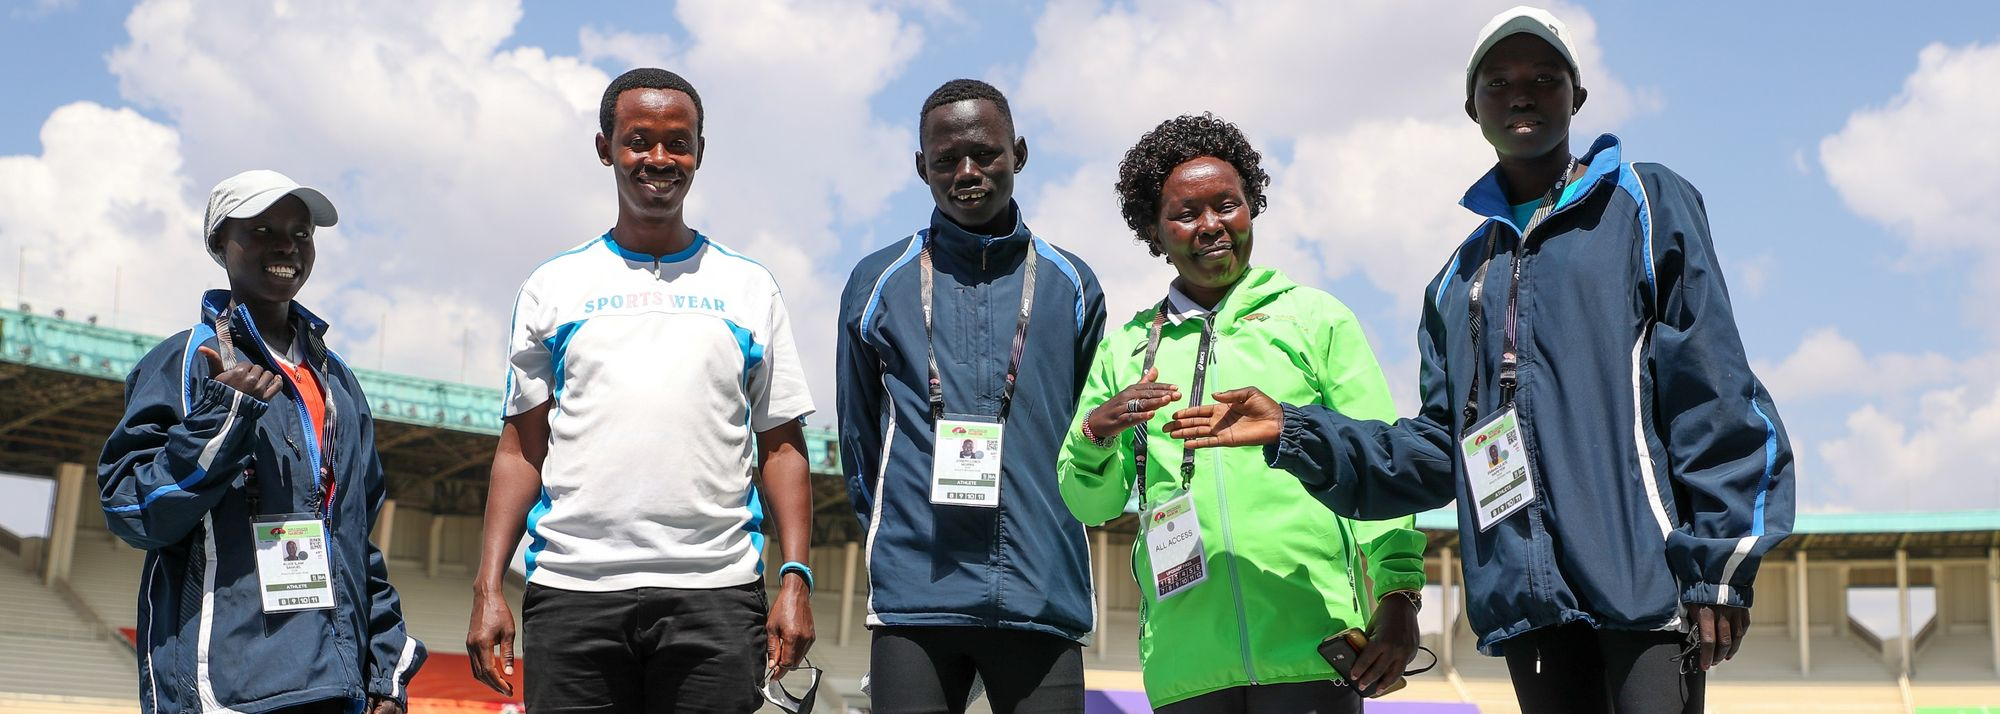 At first, it seemed like mission impossible complicated by the pandemic, confinement and lack of competitions in 2020. But for a trio of refugee athletes, the dream came true.